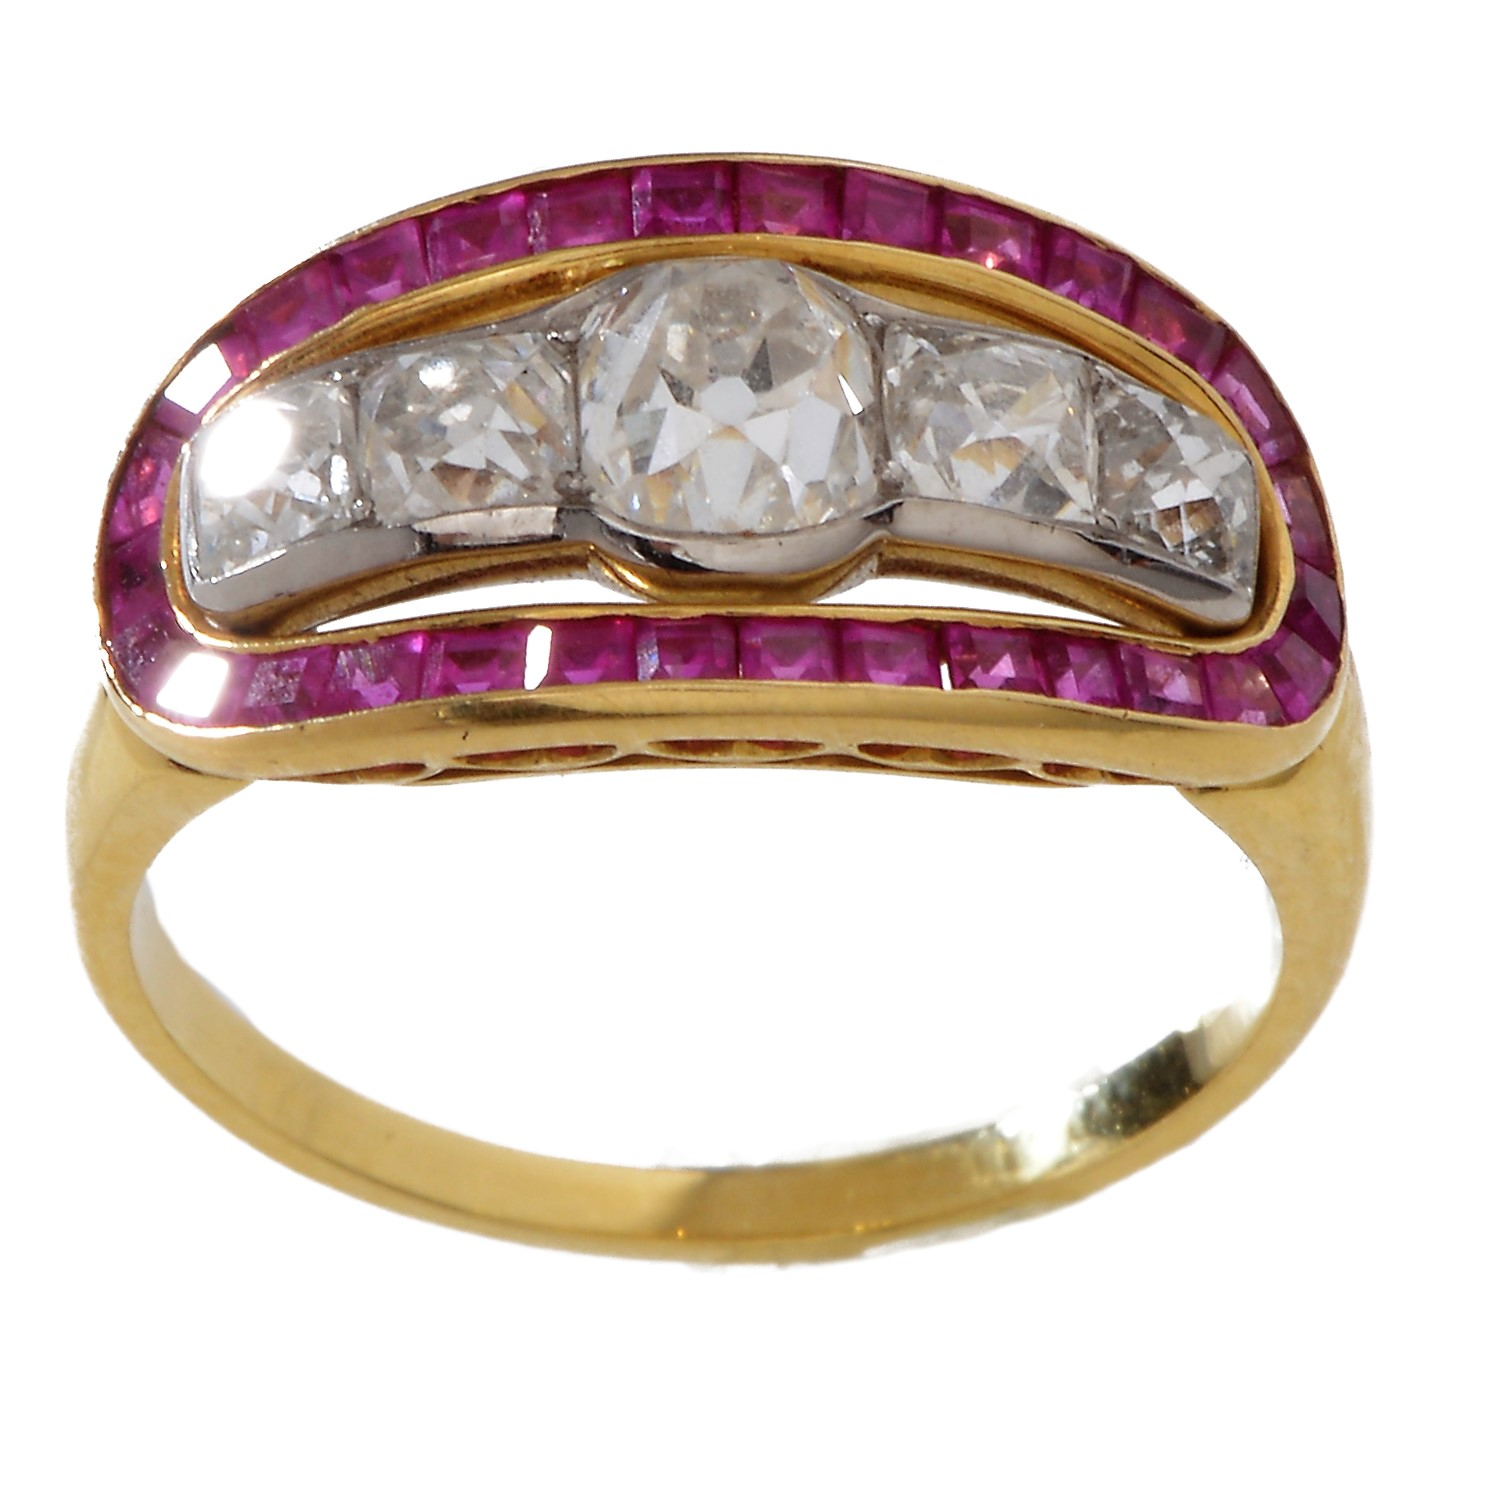 Turner and Tatler Gold, Diamond and Ruby Ring, Available at Turner and Tatler